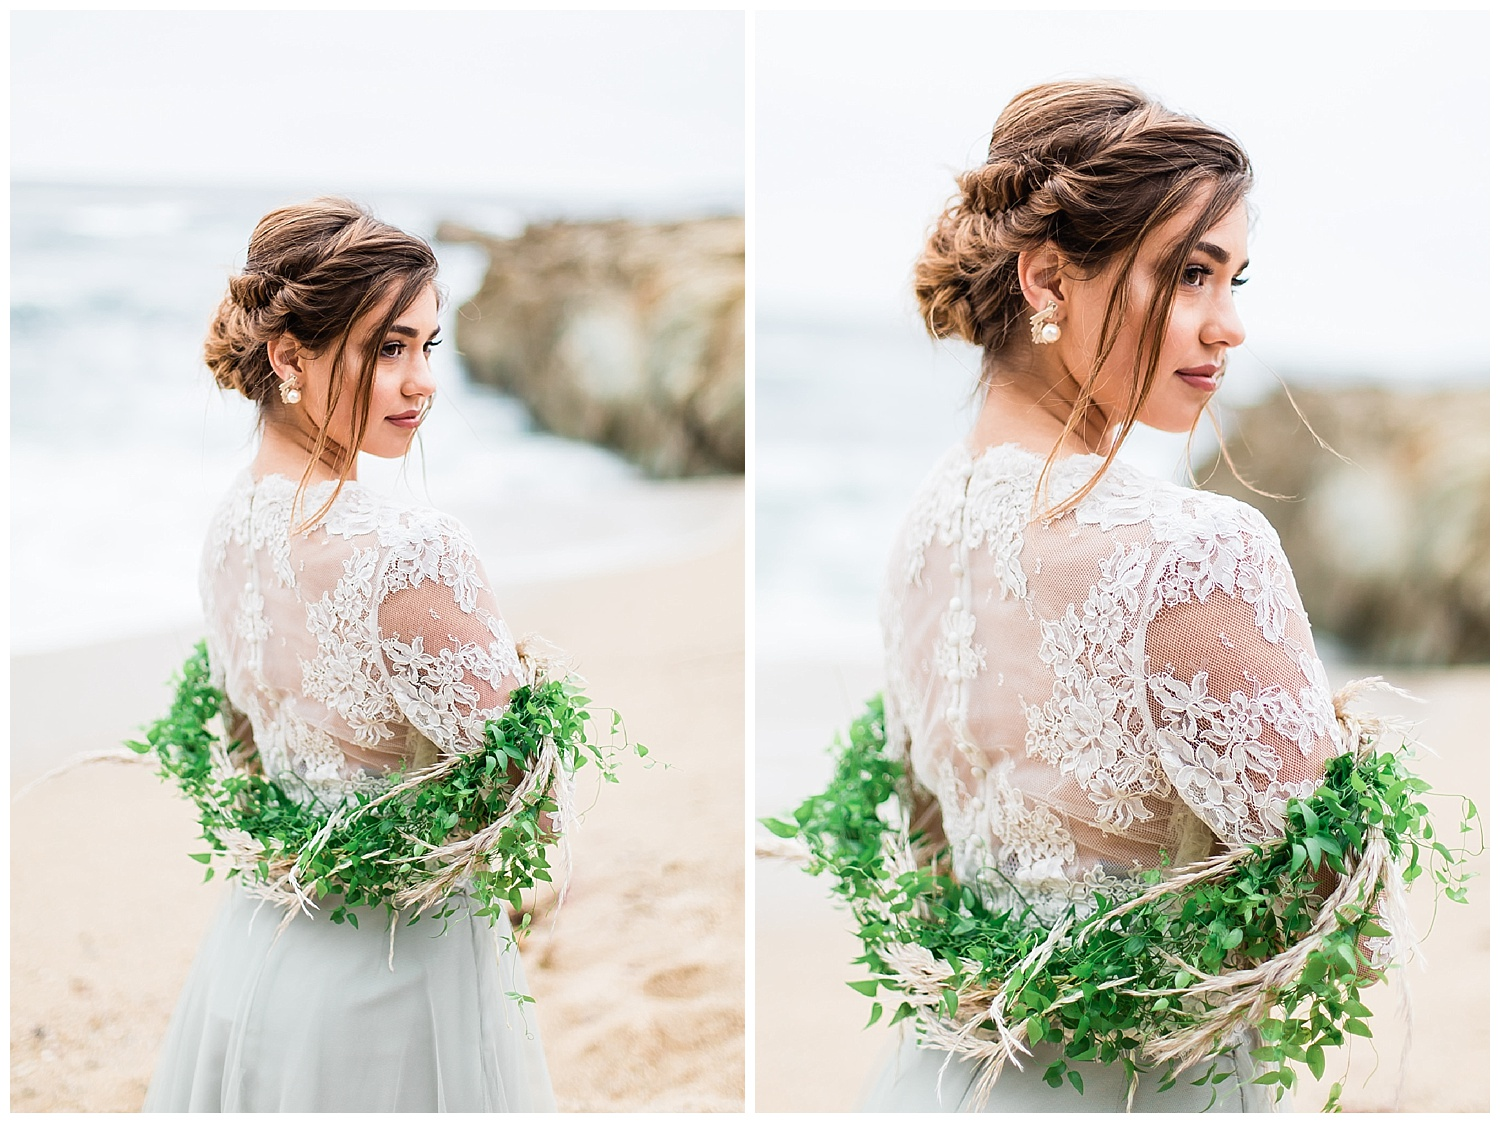 An loose updo is perfect for gowns with beautiful backs. You don't want to cover all that gorgeous lace!